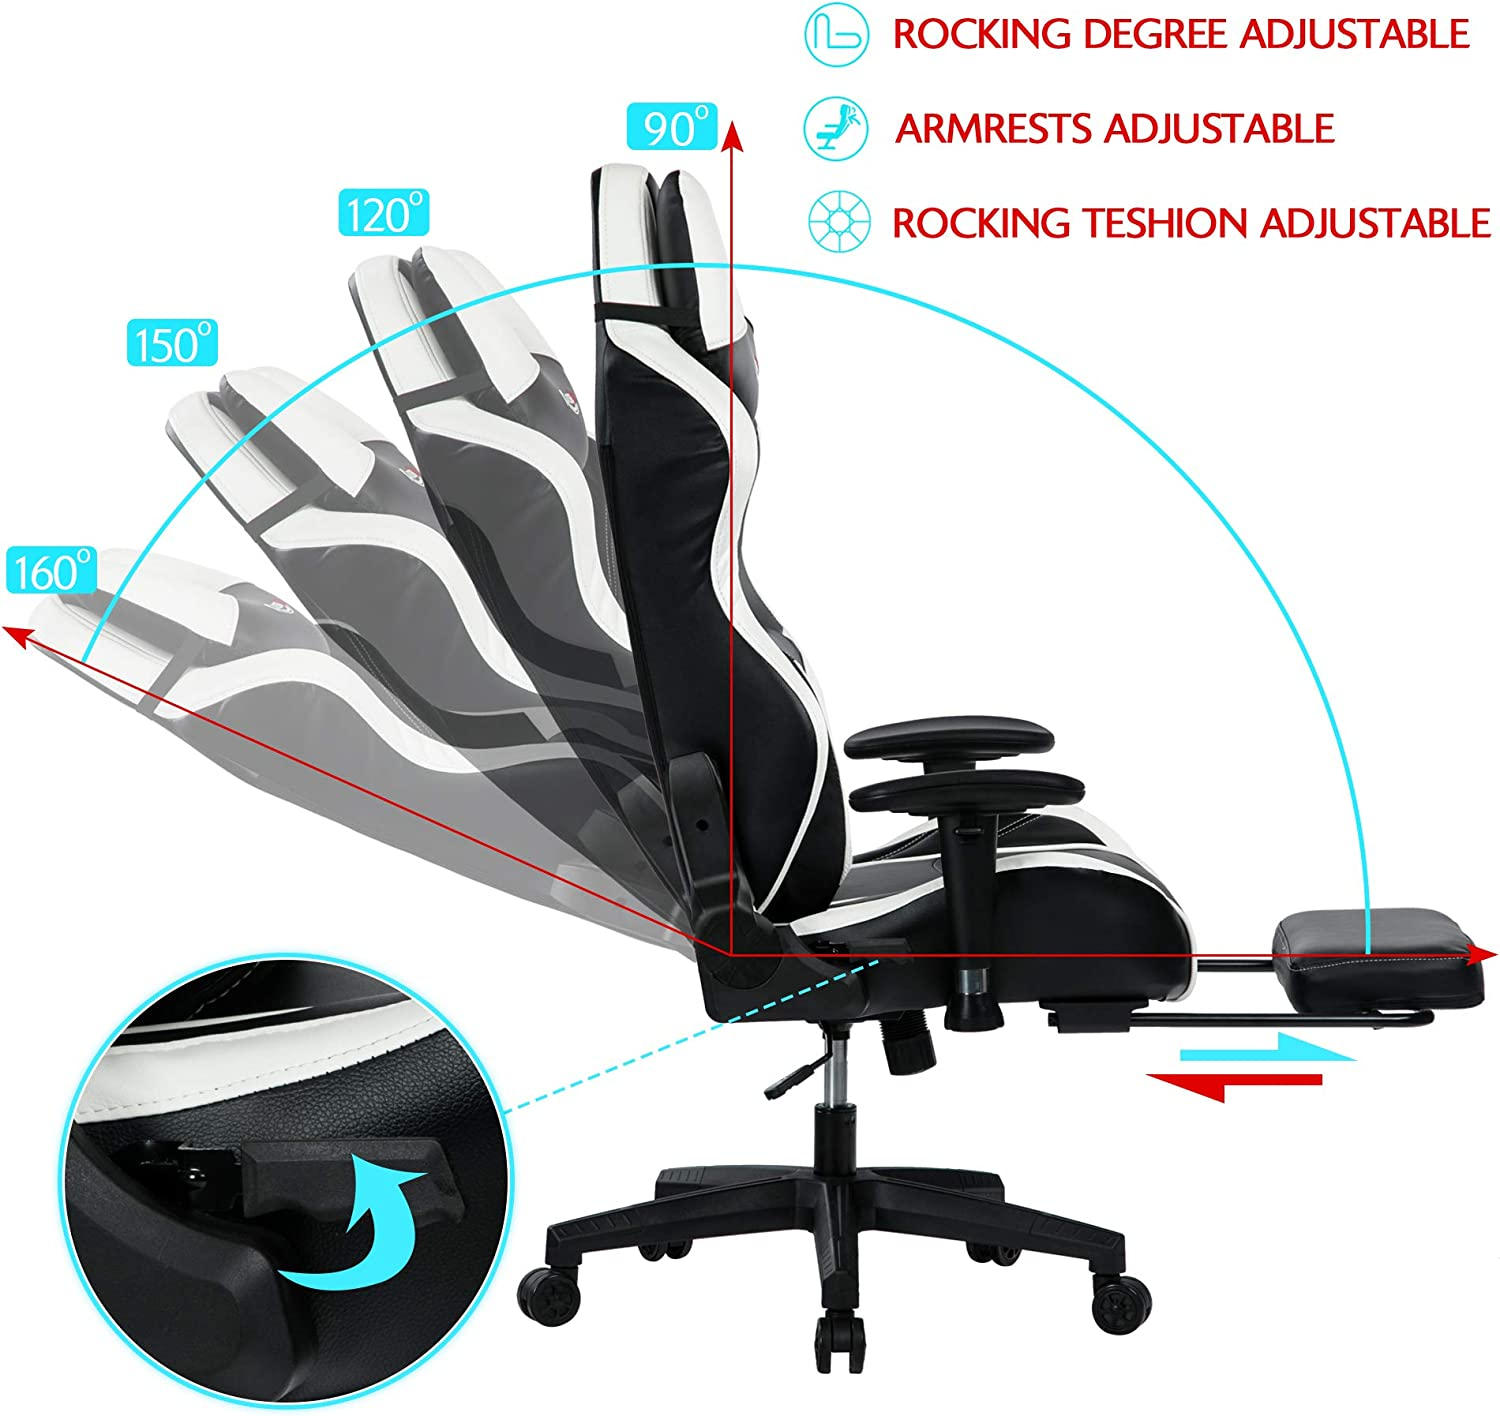 Black-8523 Kasorix Big and Tall Gaming Chair with Footrest,Black Chair with Adjustment Armrest,High Back Gamer Chair Up to 400 Pounds